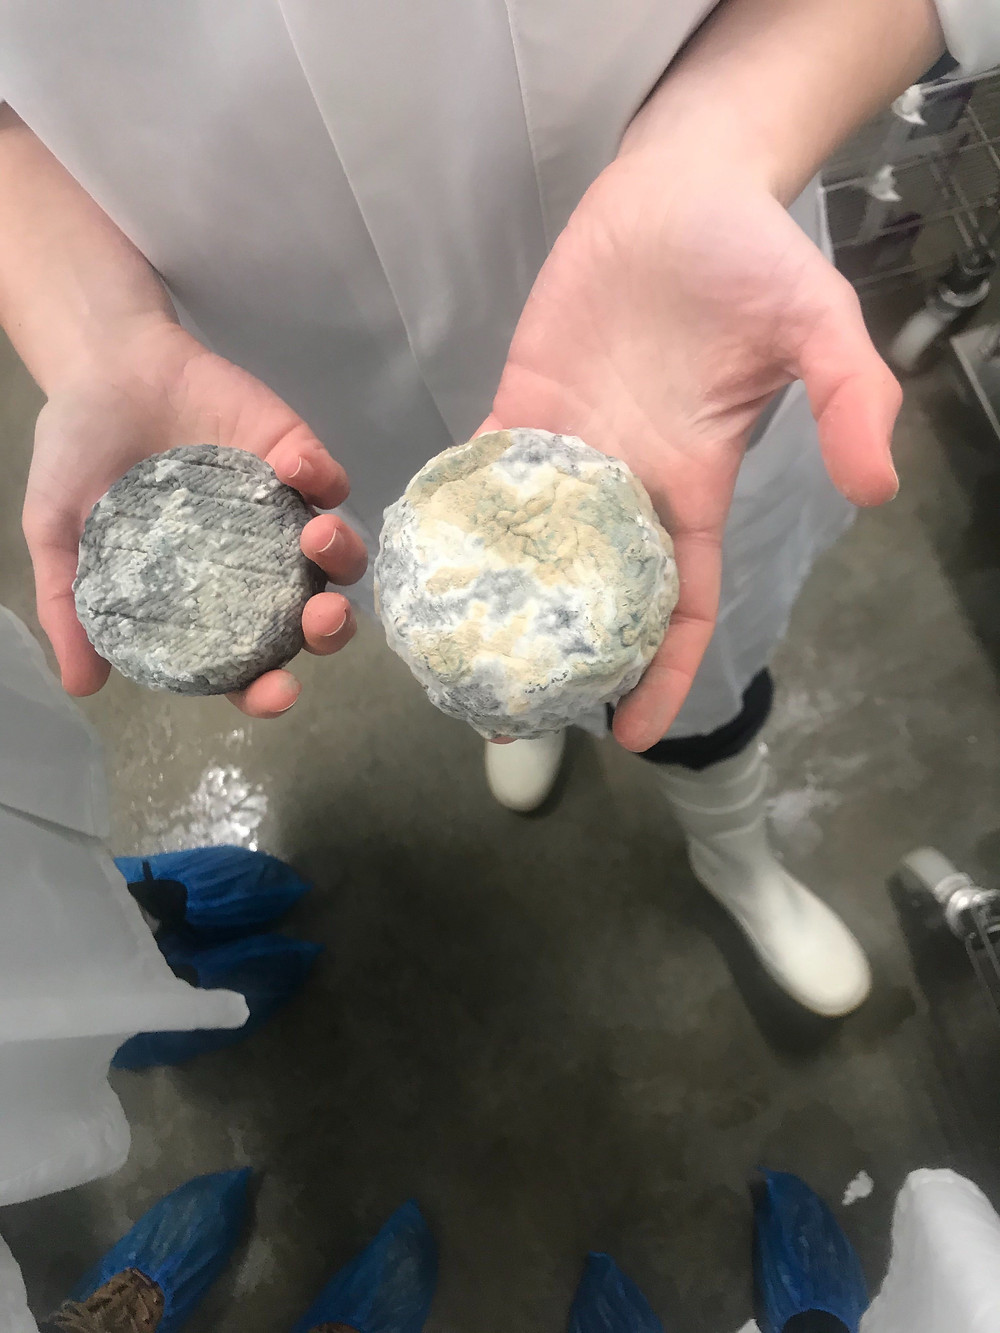 Two pieces of the same cheese at different stages of maturing